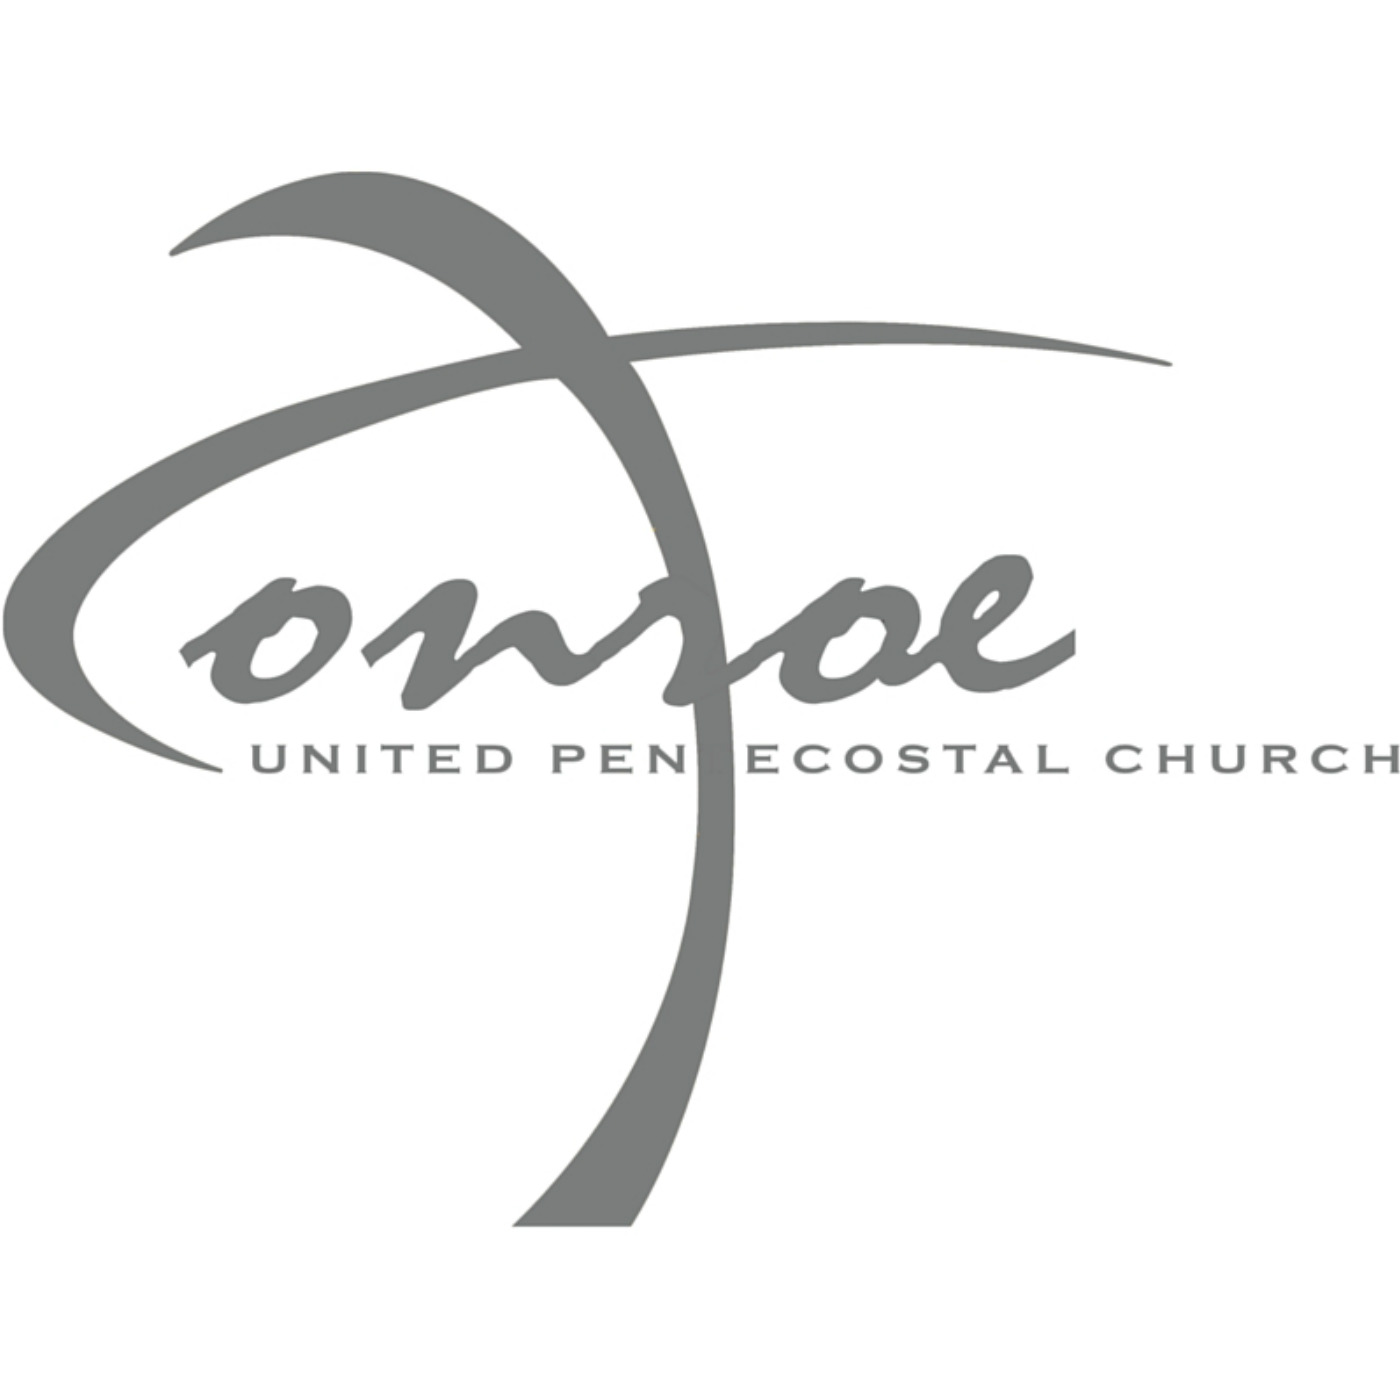 Conroe United Pentecostal Church